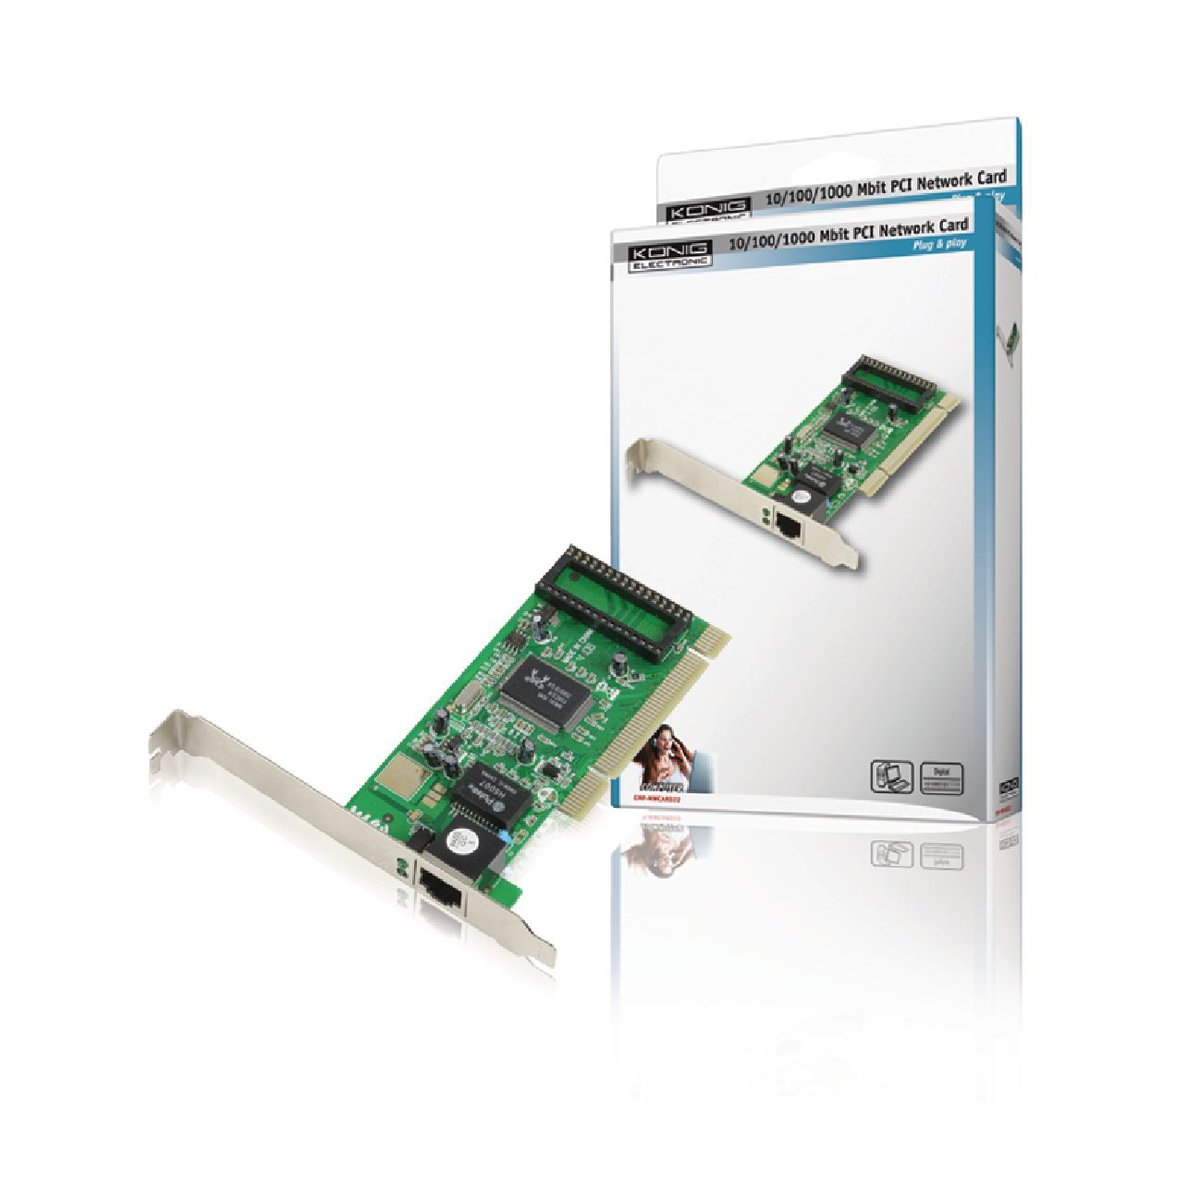 CMP-NWCARD22 - Gigabit ethernet adapter